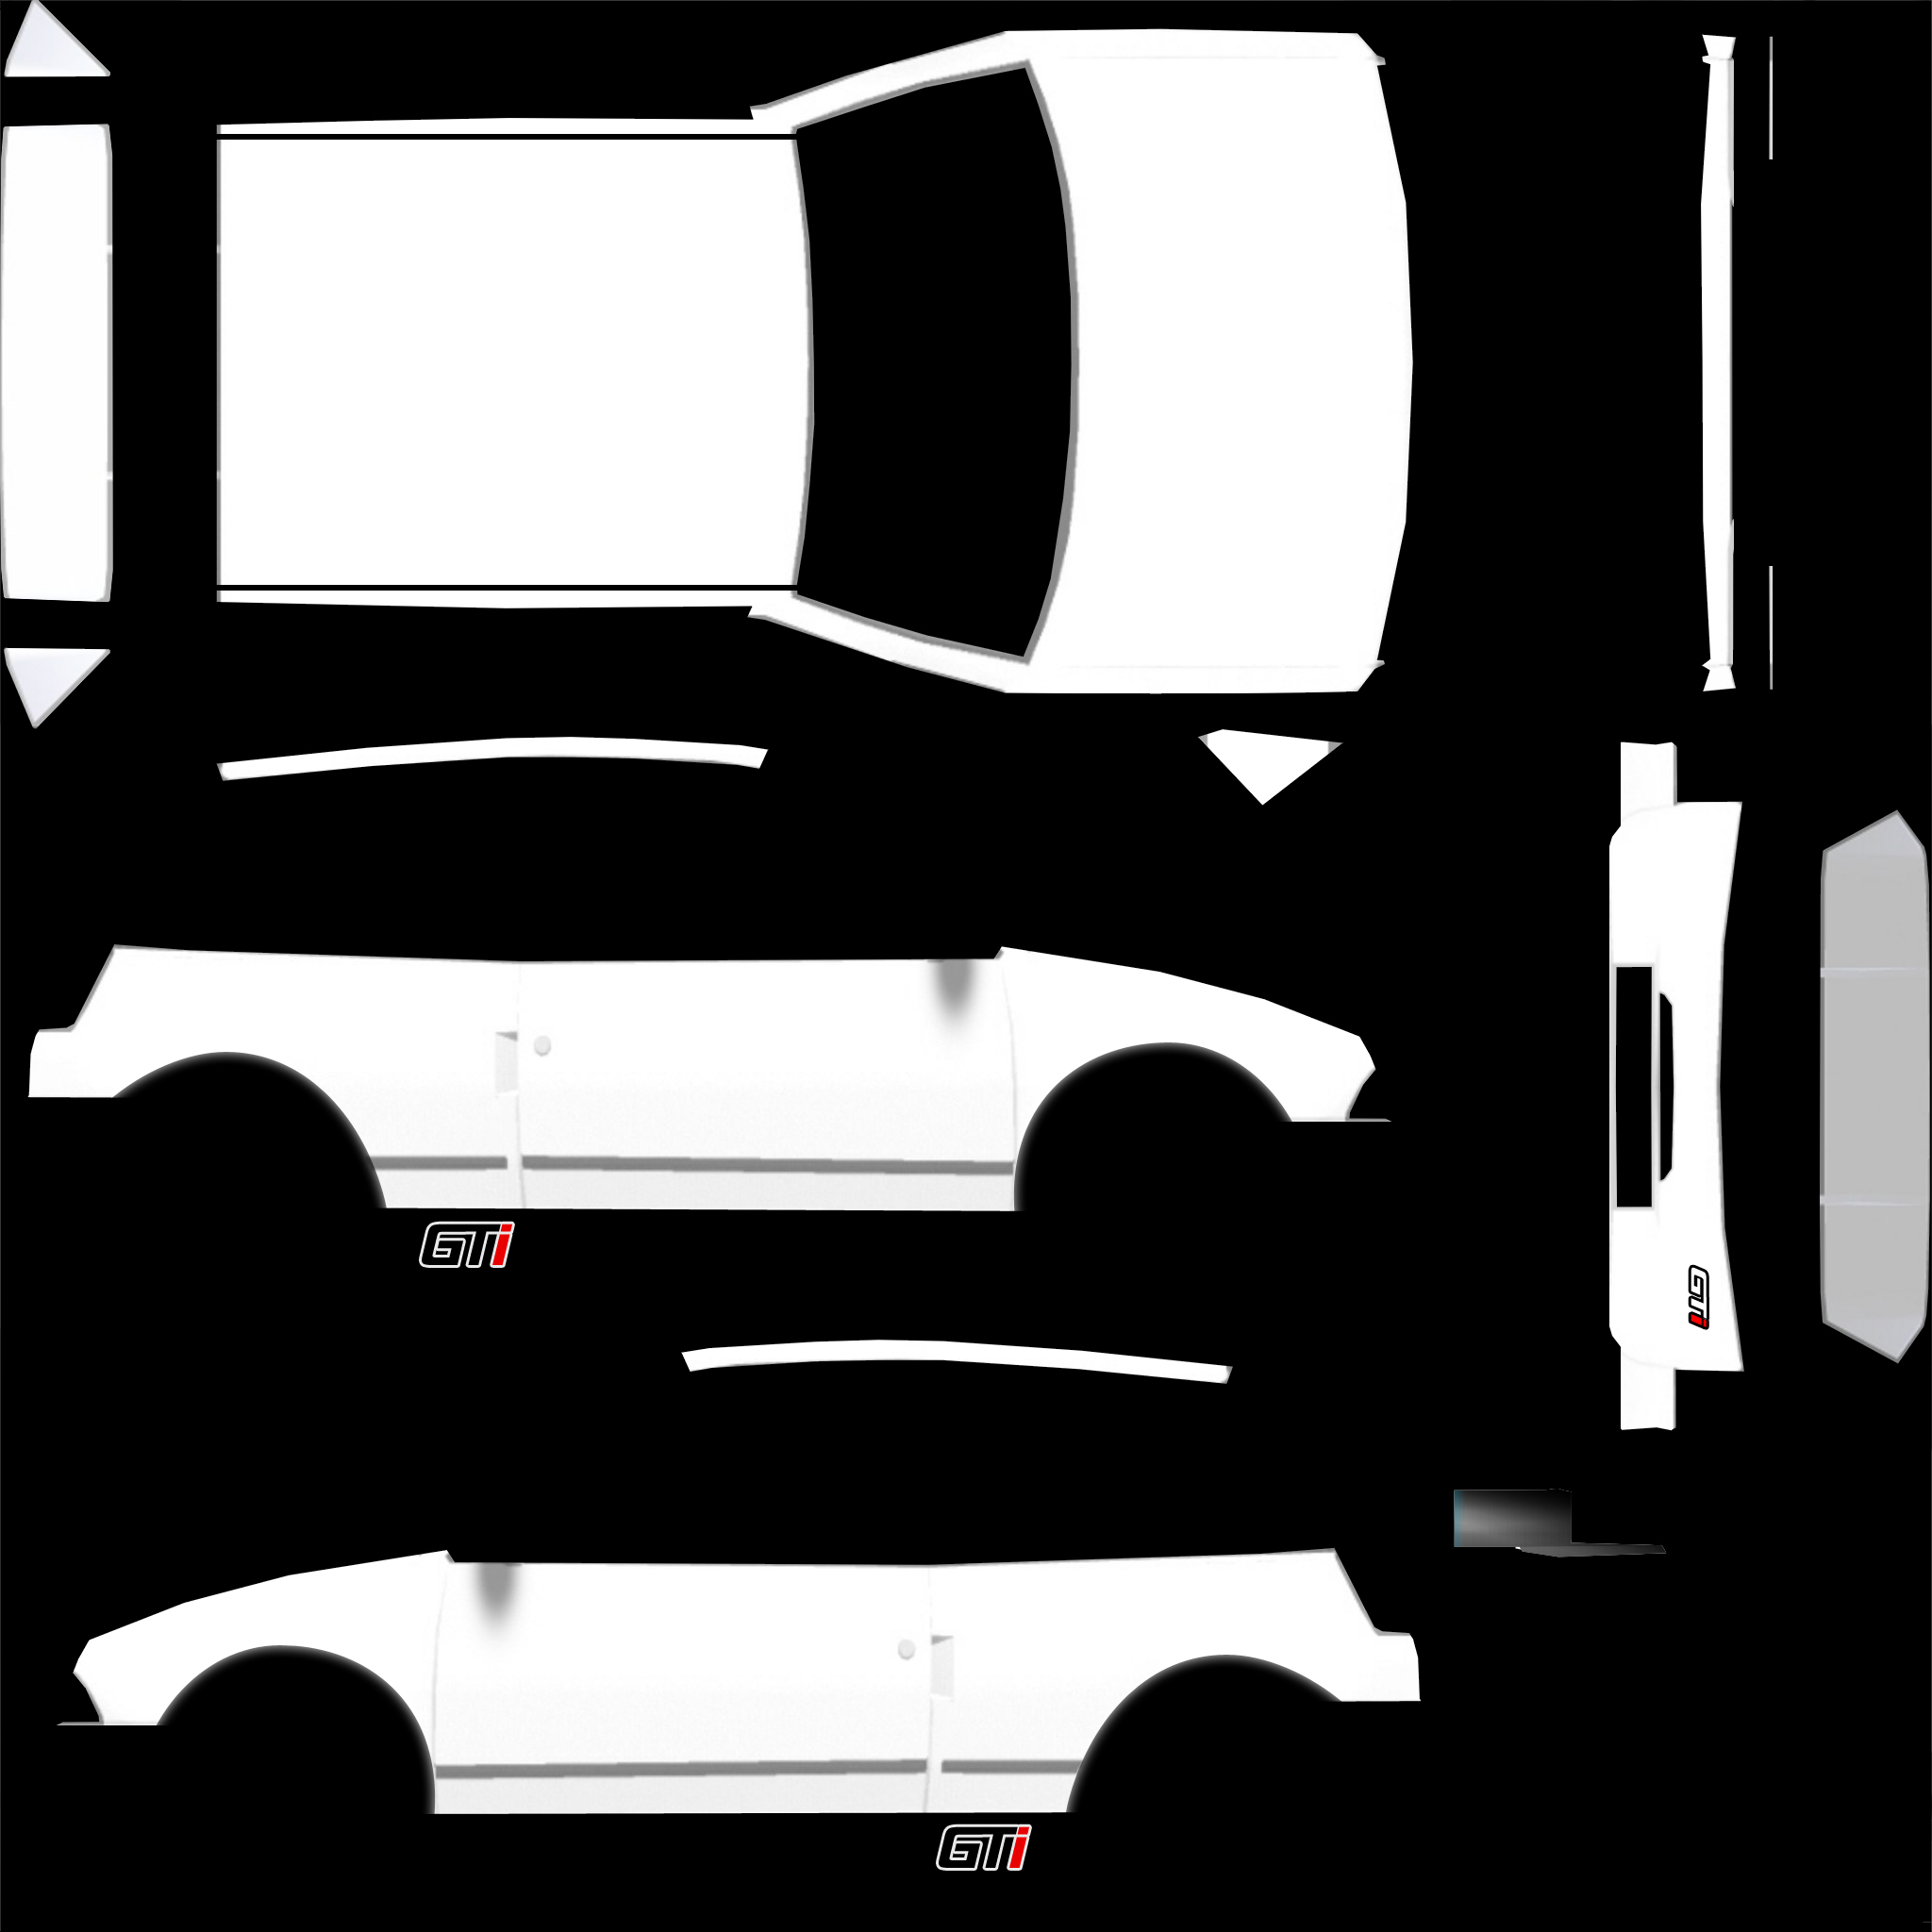 Xf Gti 171 Bean0 Com Car Skins For Live For Speed Assetto Corsa And Project C A R S